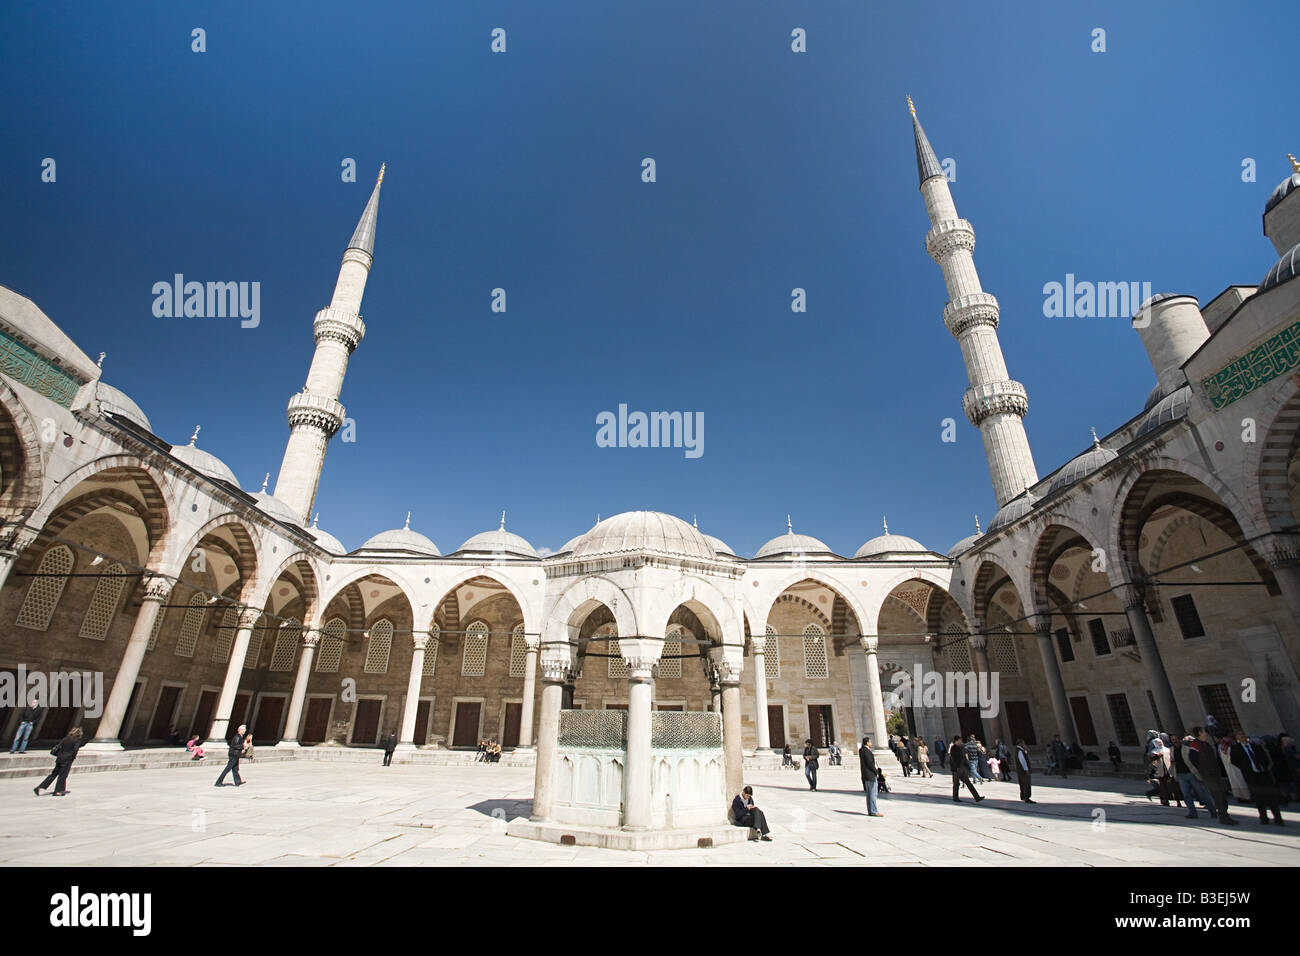 Courtyard of blue mosque istanbul - Stock Image